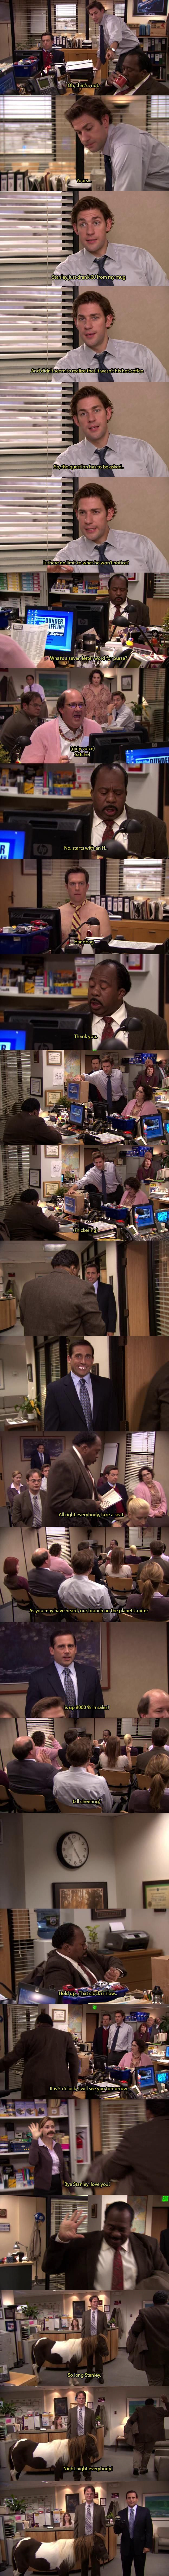 2nd favorite opening to The Office. 1st favorite - when they all sang a song together with Andy